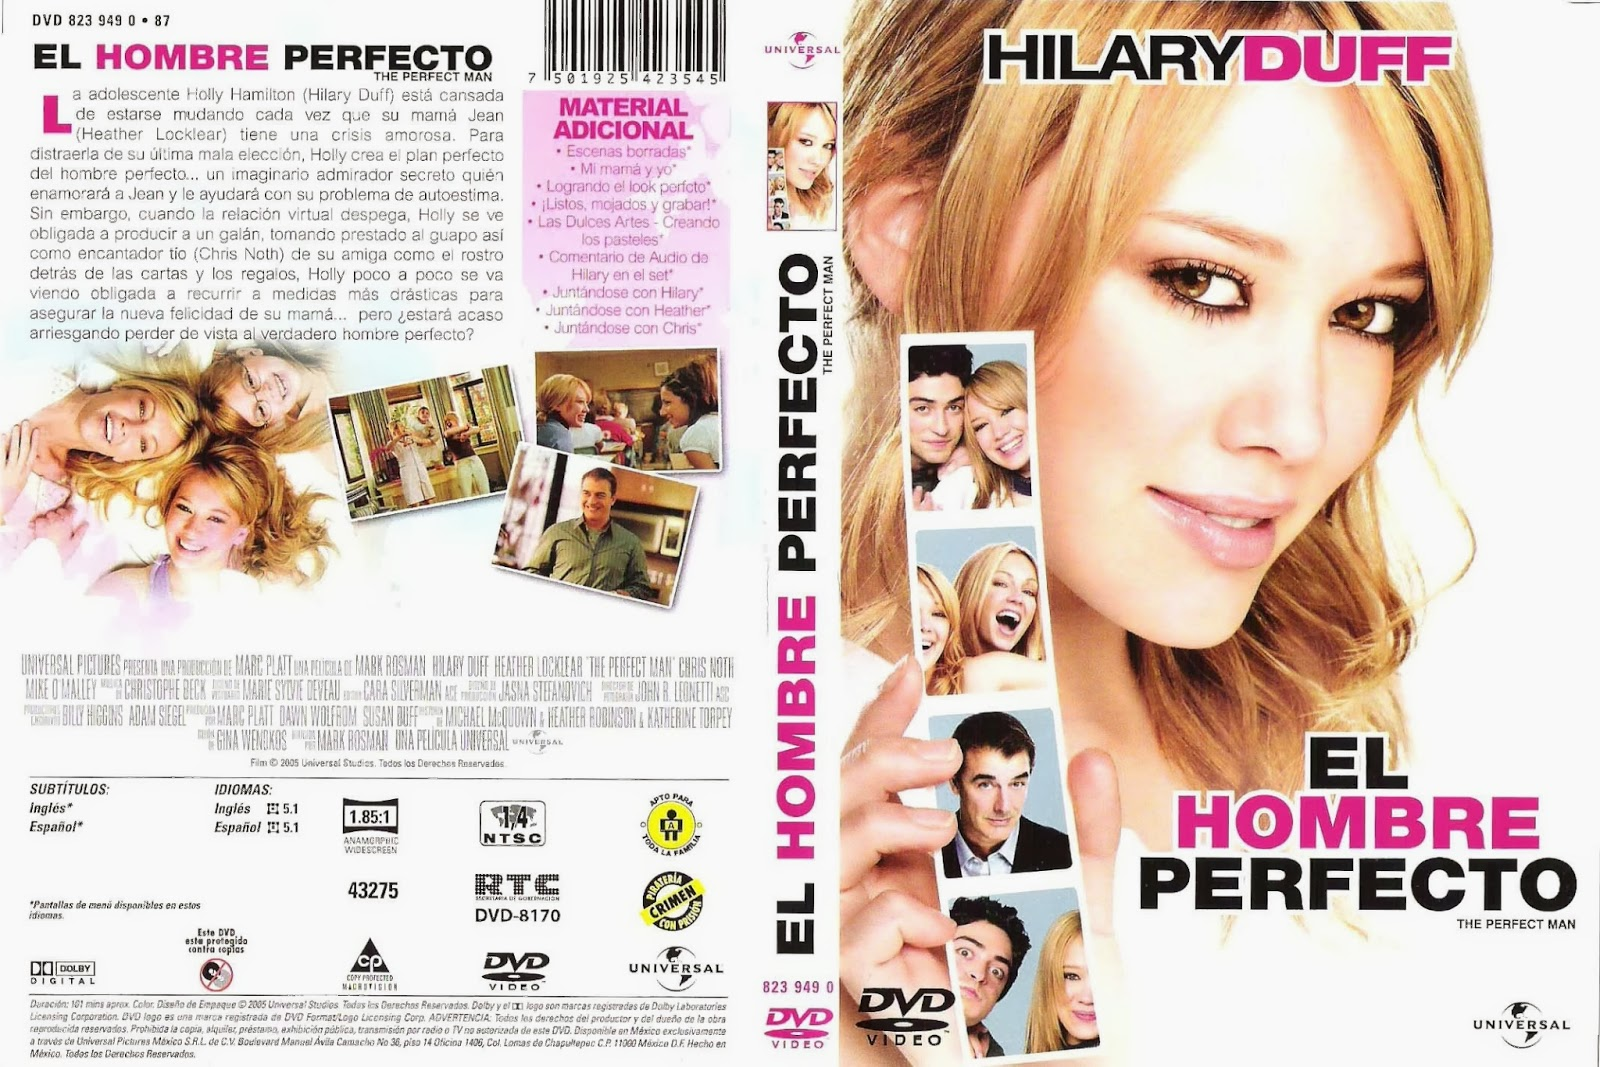 erhard hispanic singles Hilary duff official site - sit tight, we're working on something new follow me on facebook, twitter and instagram for updates:.